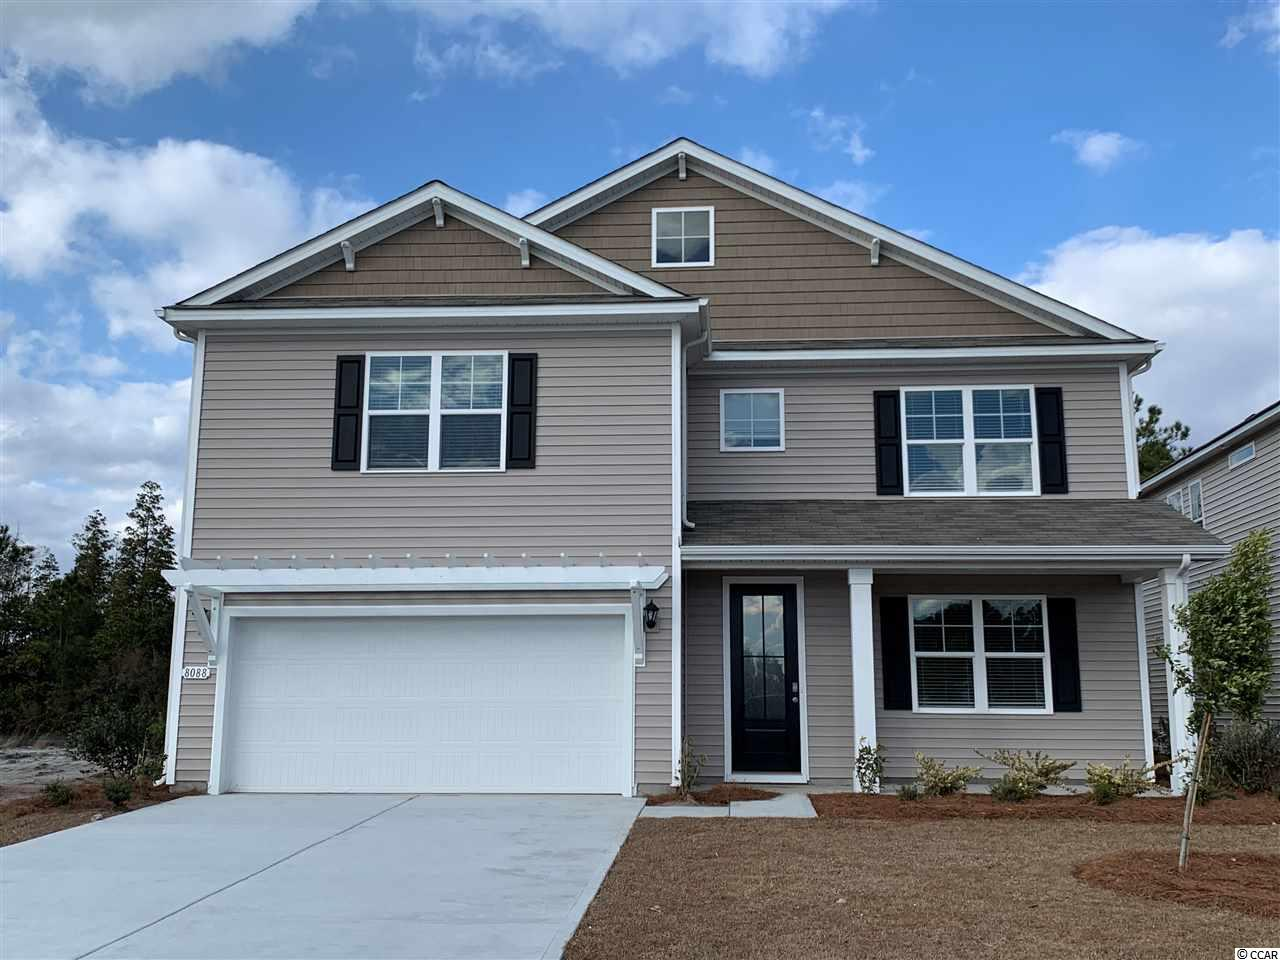 "This popular Tillman plan will give you the perfect mix of indoor and outdoor living featuring an inviting front porch and large rear patio! Gourmet kitchen with sleek granite, 36"" white painted cabinets, and stainless Whirlpool appliances including a gas range. Beautiful wide plank laminate flooring flows throughout the dining room, kitchen, and living room. The first floor owner's suite boasts a huge walk-in closet and en suite bath with a double vanity, 5' shower, and garden tub. Upstairs you will find a generous loft area, 4 additional bedrooms, and 2 full bathrooms. *Photos are of a similar Tillman home. (Home and community information, including pricing, included features, terms, availability and amenities, are subject to change prior to sale at any time without notice or obligation.  Square footages are approximate.  Pictures, photographs, colors, features, and sizes are for illustration purposes only and will vary from the homes as built.  Equal housing opportunity builder.)"